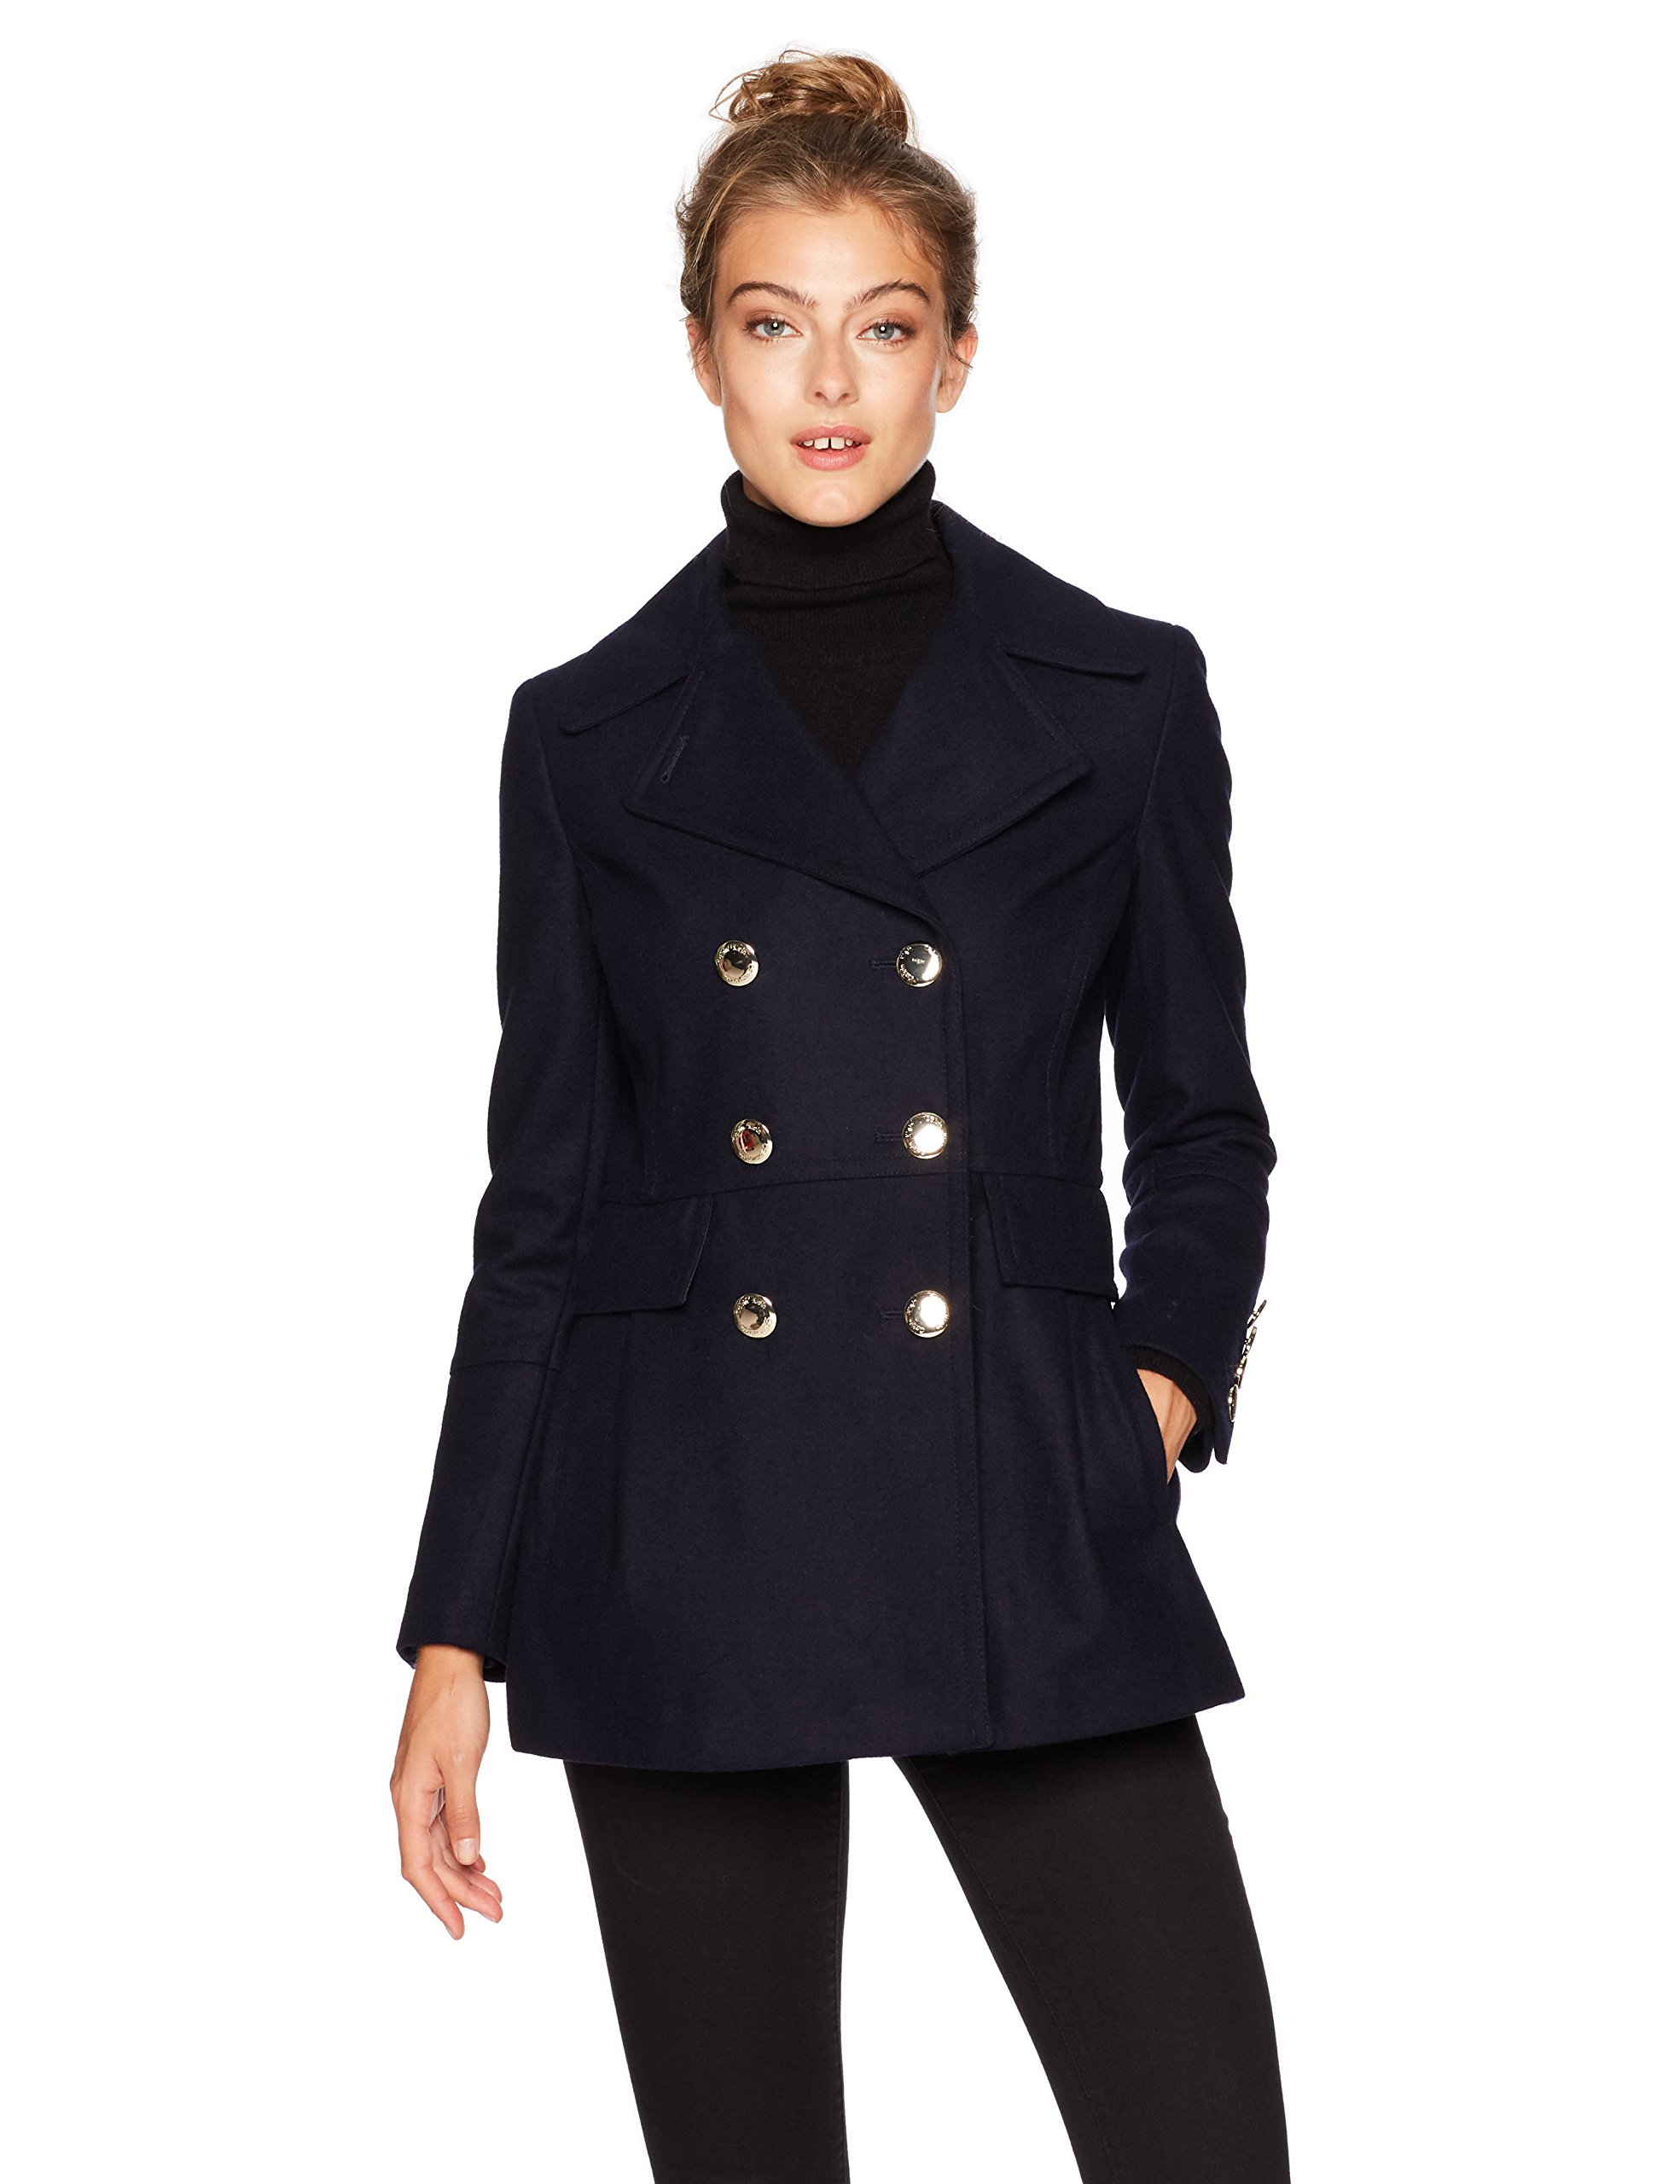 Calvin Klein Women's Polished Wool Coat with Button Detail, Navy, XL